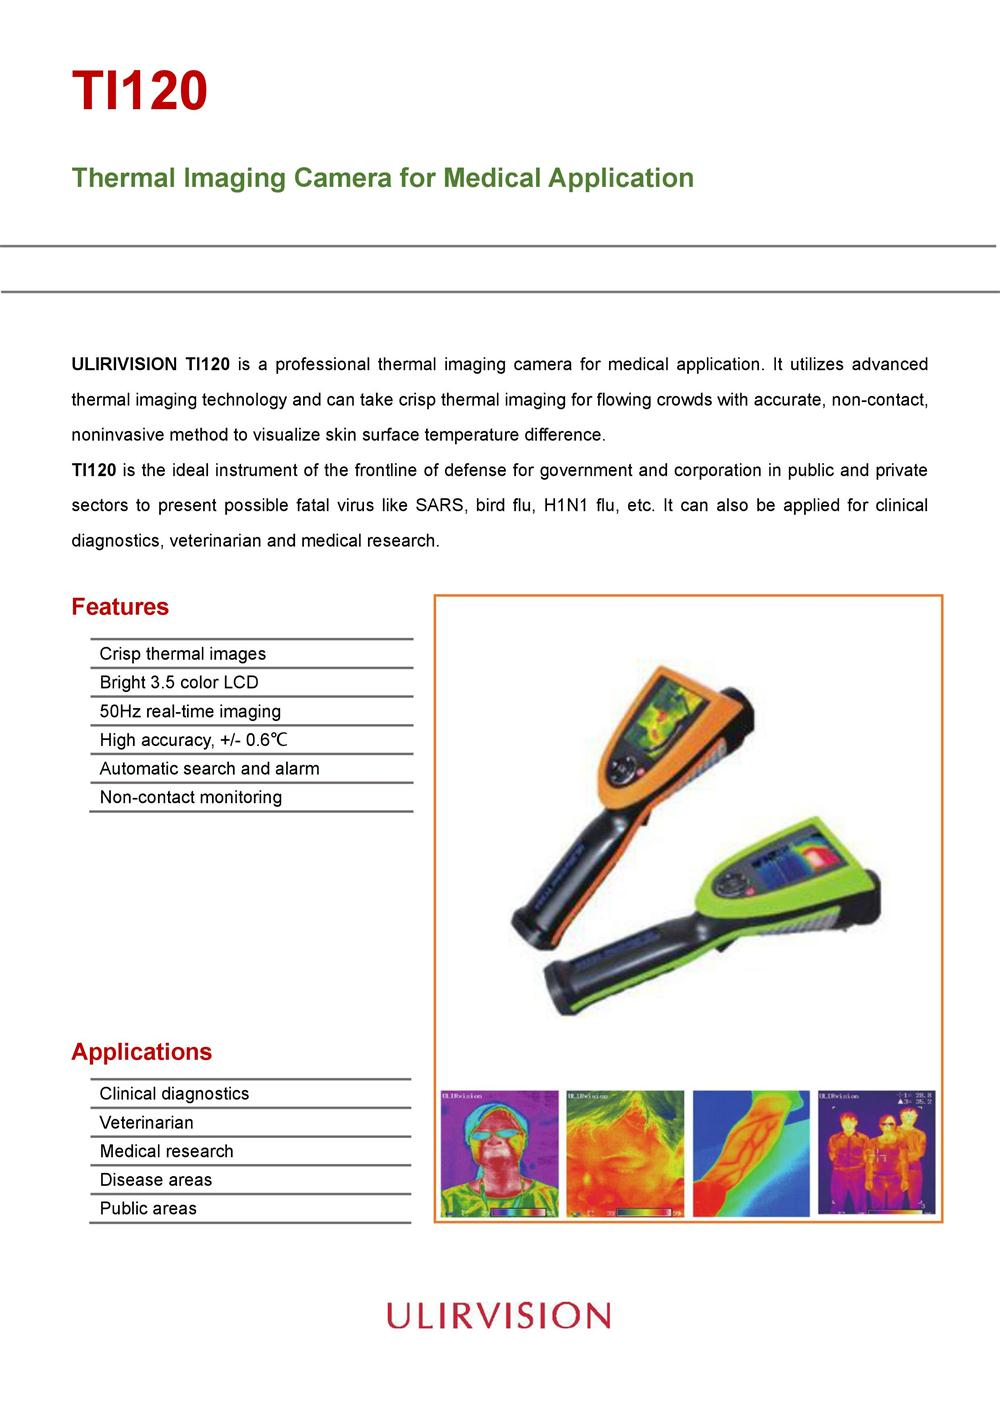 ULIRVISION Thermal Imaging Camera TI120